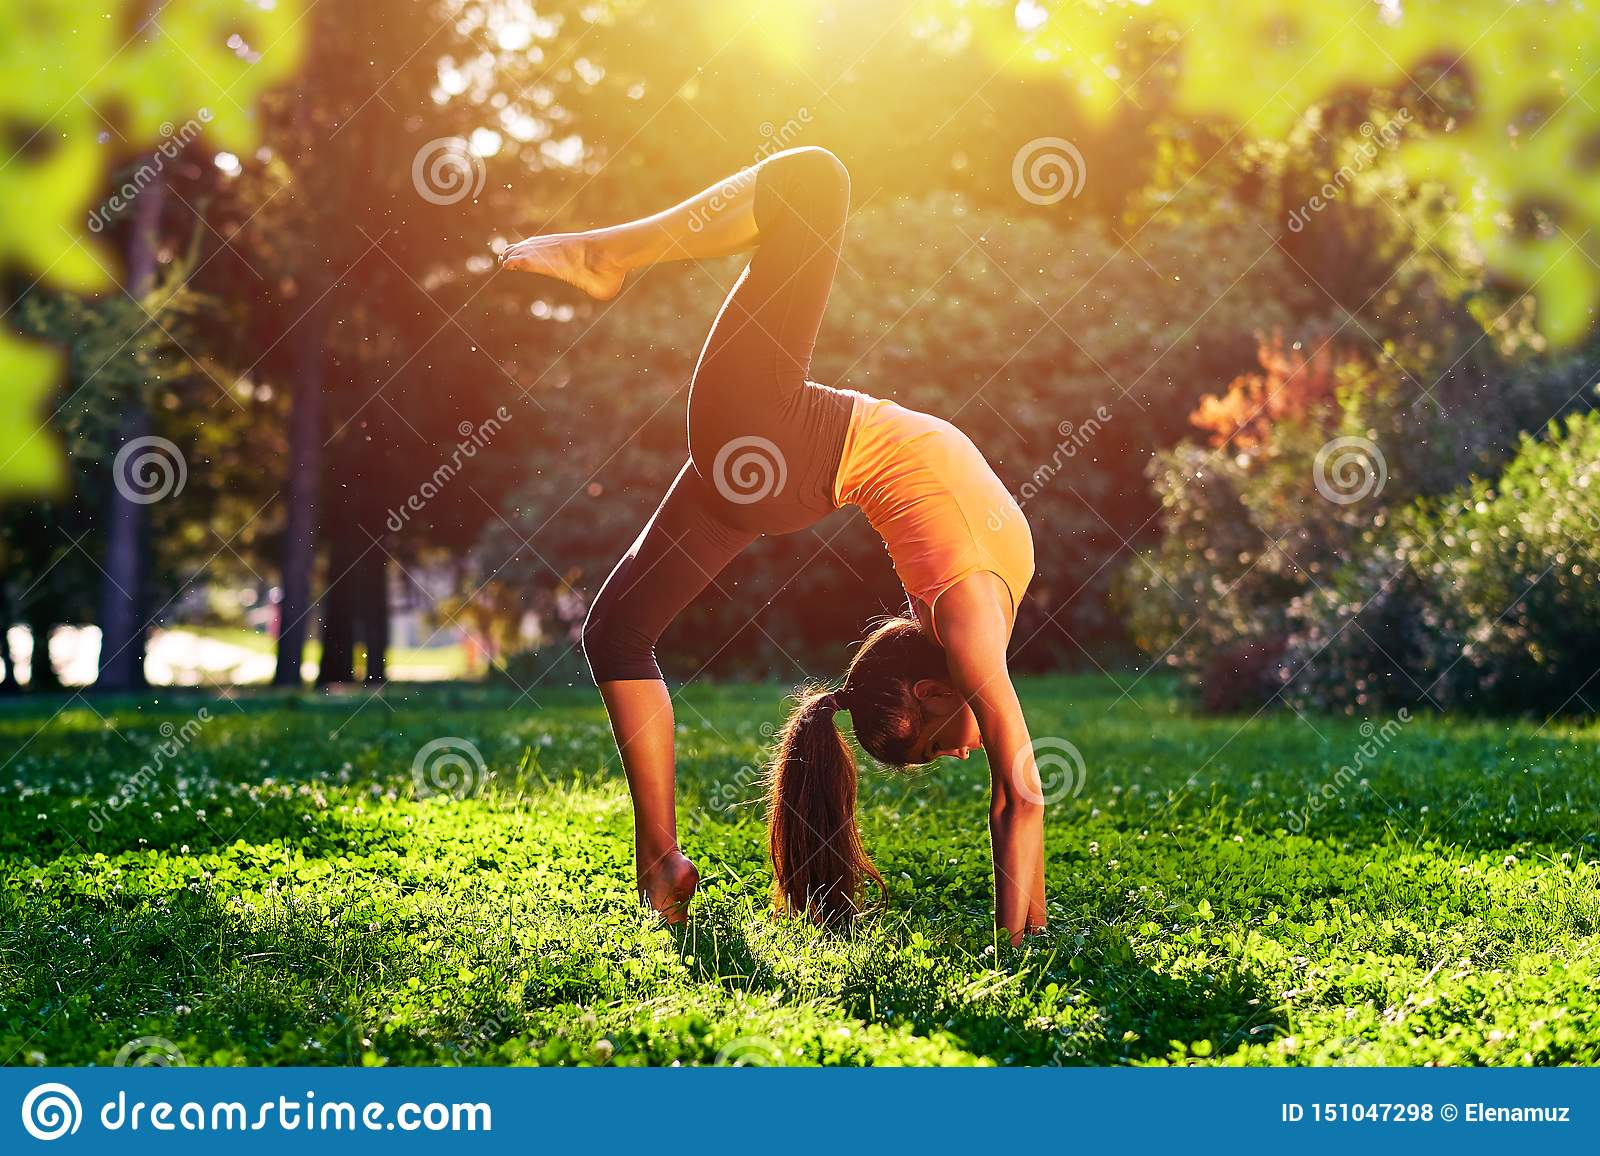 Yoga. Bridge exercise. Young woman practicing yoga or dancing or stretching in nature at park. Health lifestyle concept